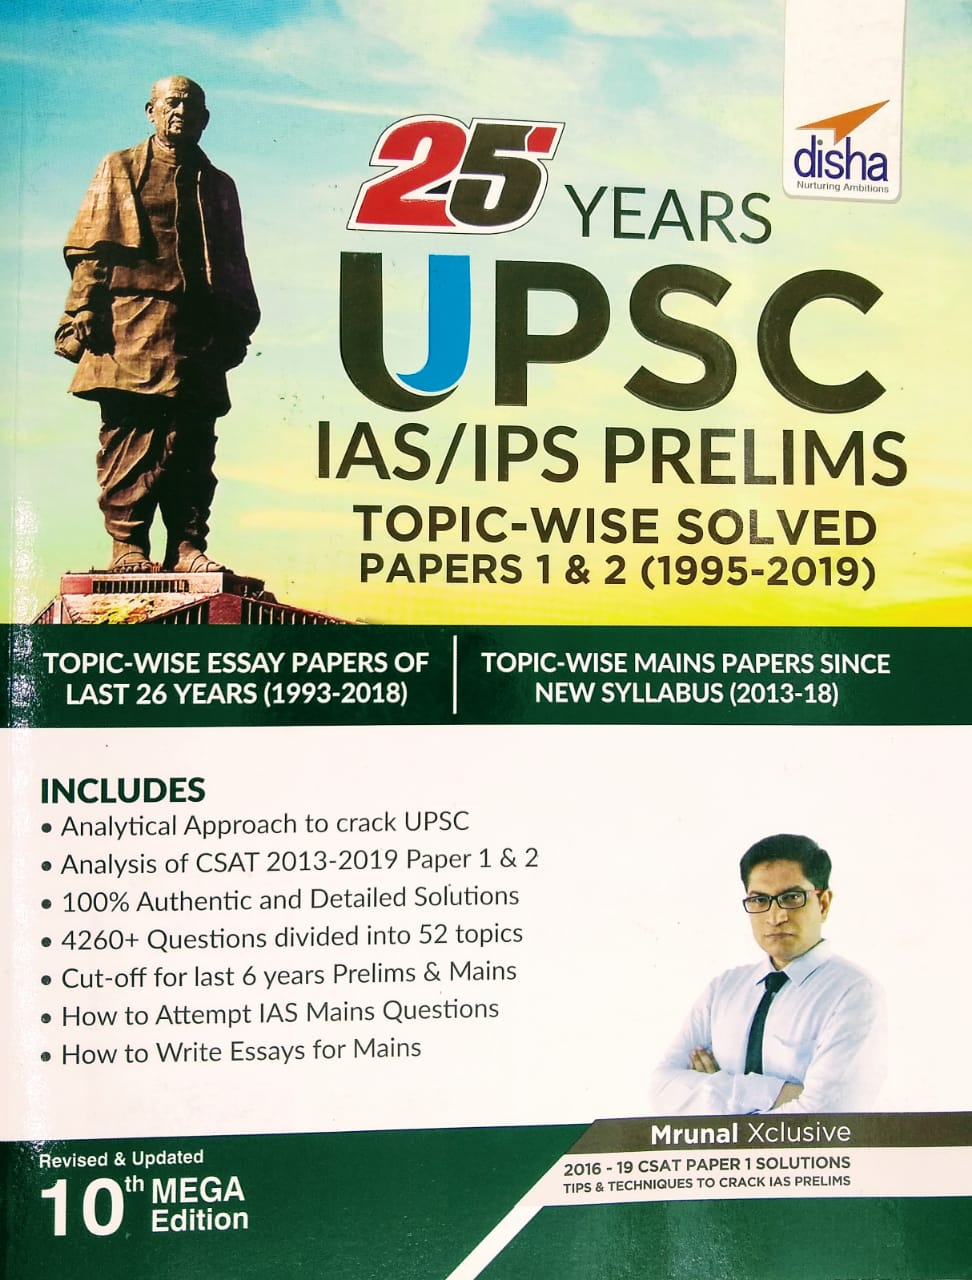 Disha UPSC IAS IPS PRELIMS PAPERS